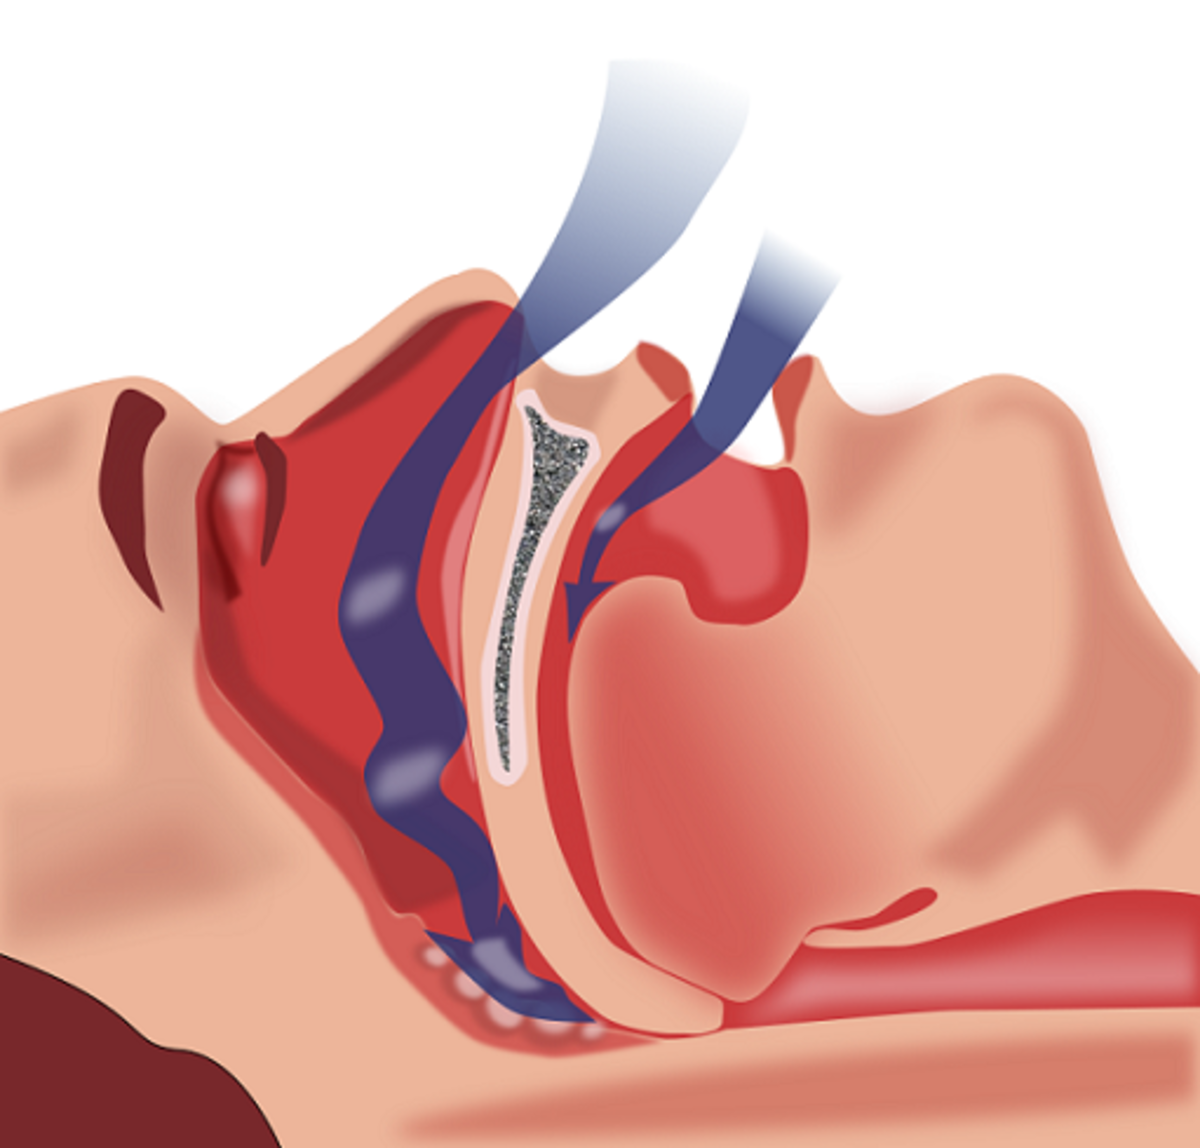 The snoring sound varies depending on how narrow the airway gets. The less space there is left for the air to pass through, the louder the snoring becomes.